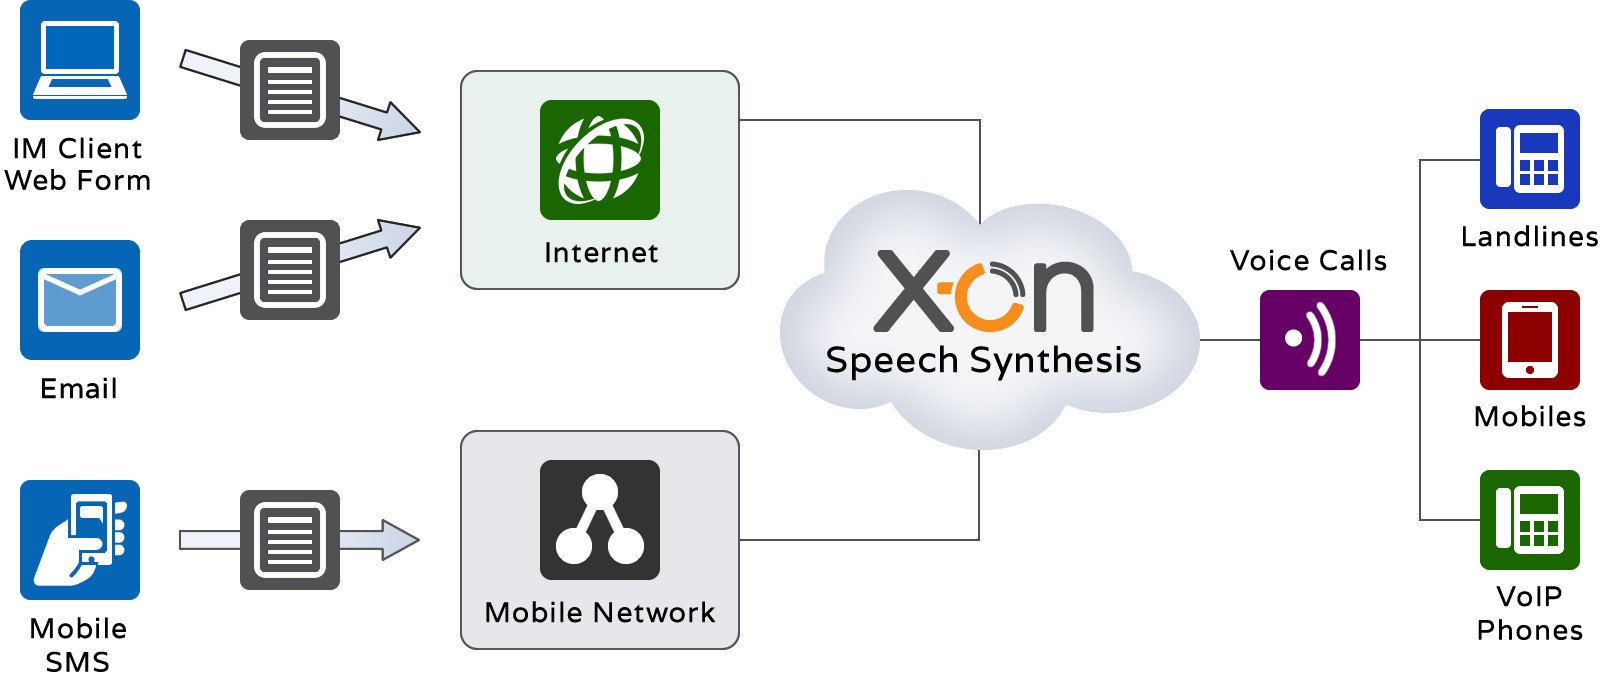 Text to Speech converts text and delivers as voice calls to landlines, mobiles and softphones